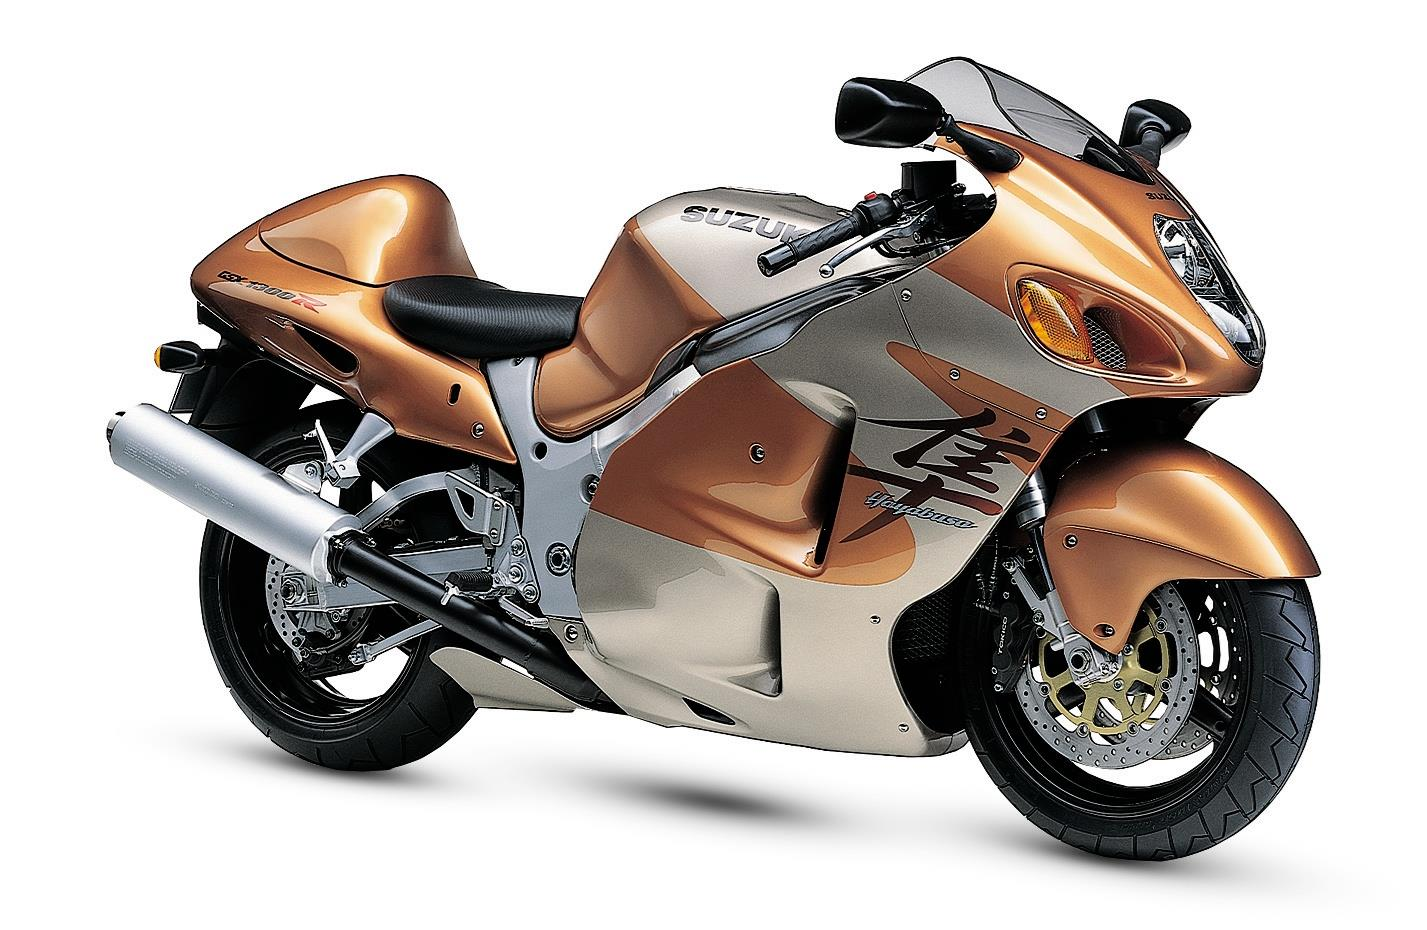 First generation Suzuki Hayabusa